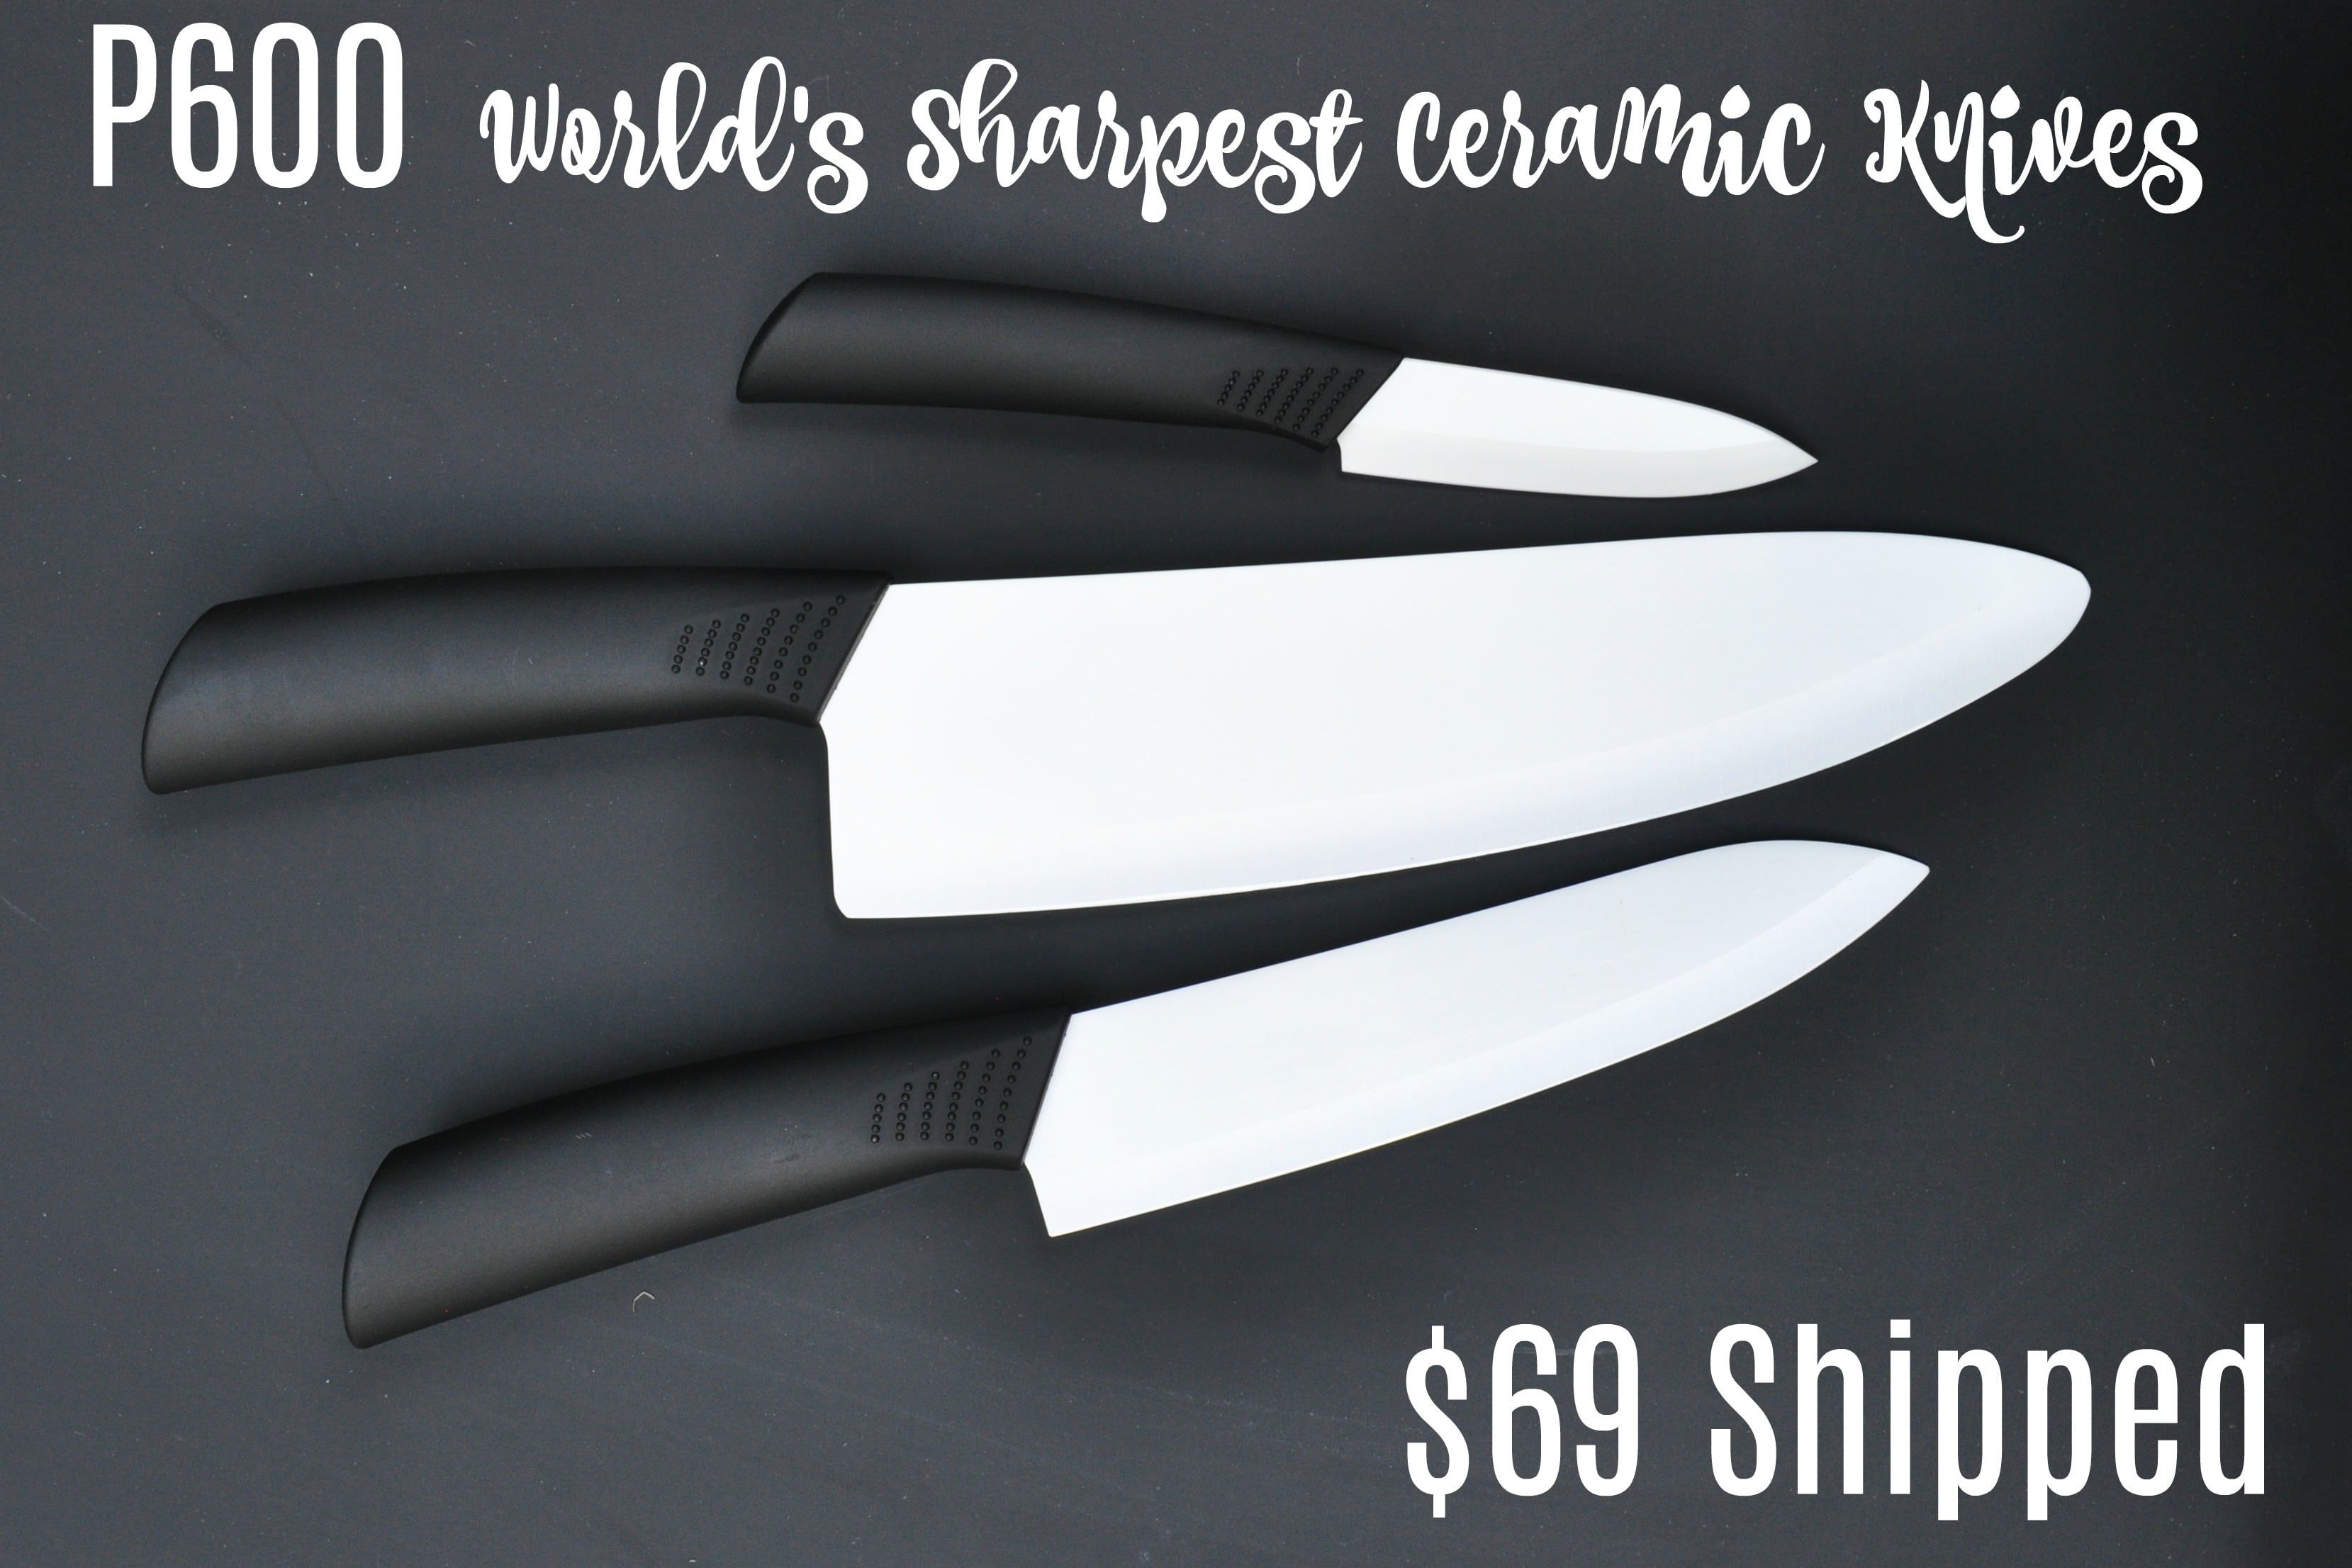 p600 Worlds sharest knives